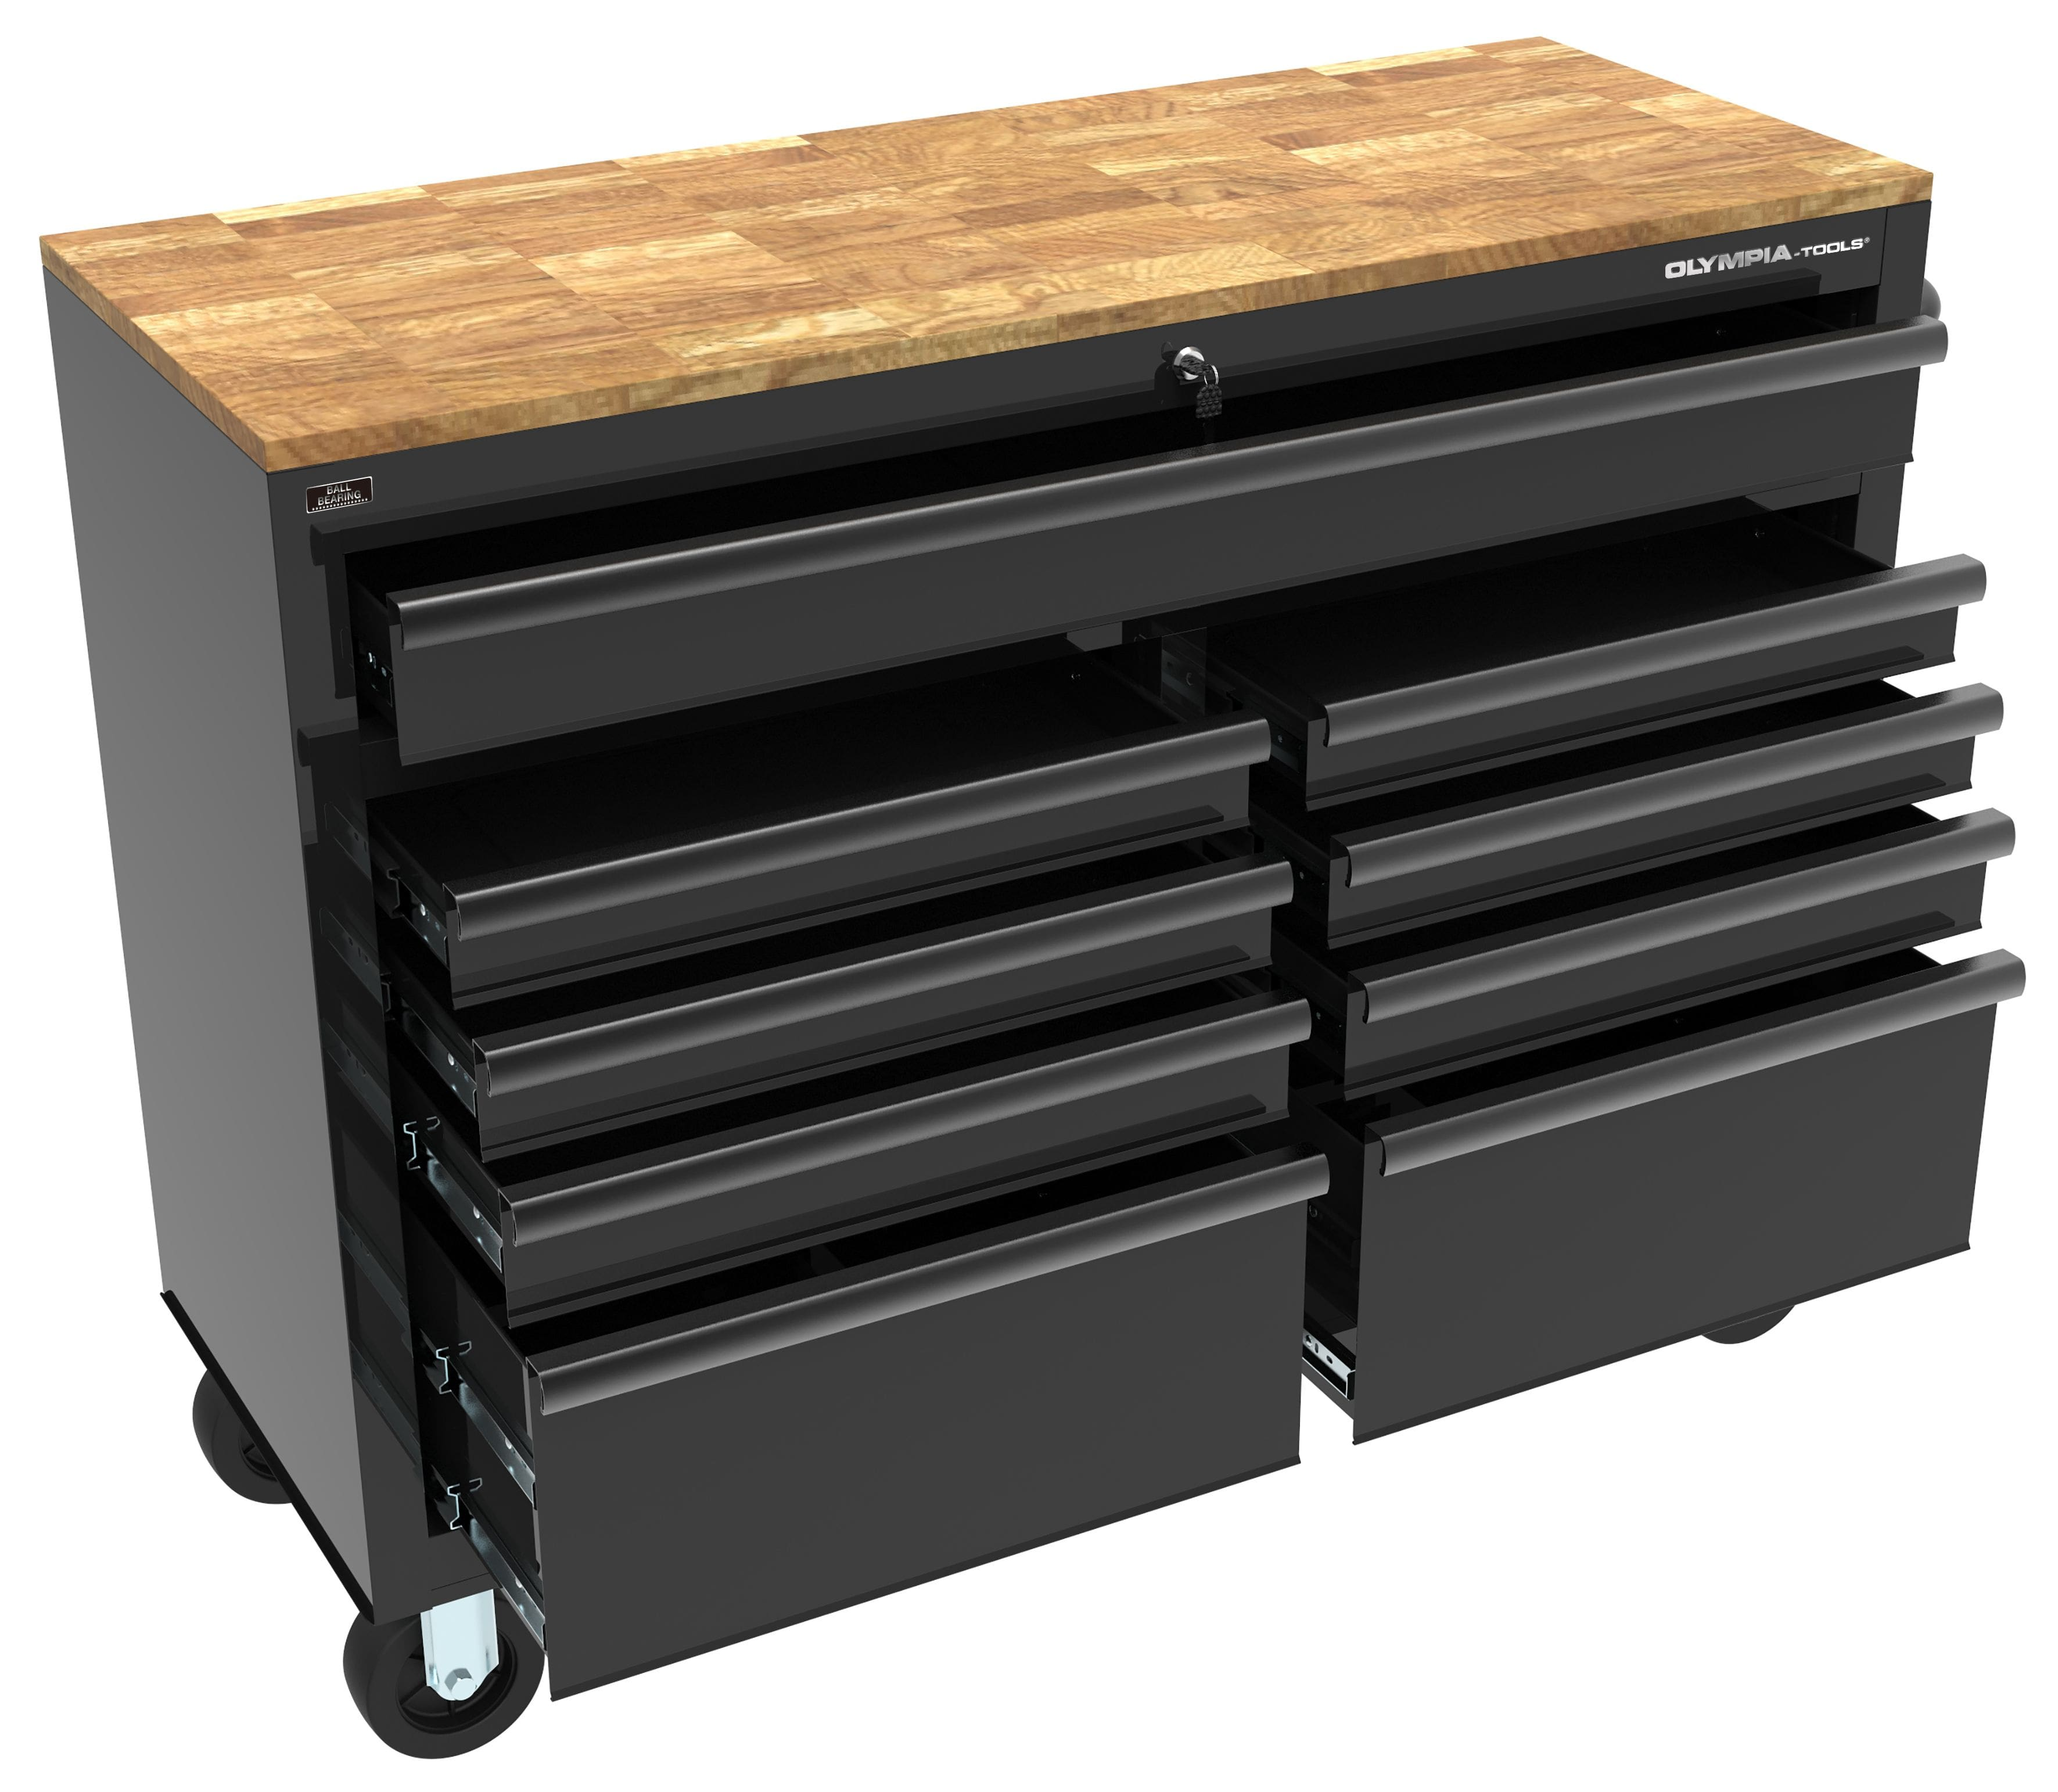 "Olympia 46"" 9 Drawer Tool Chest  $250"